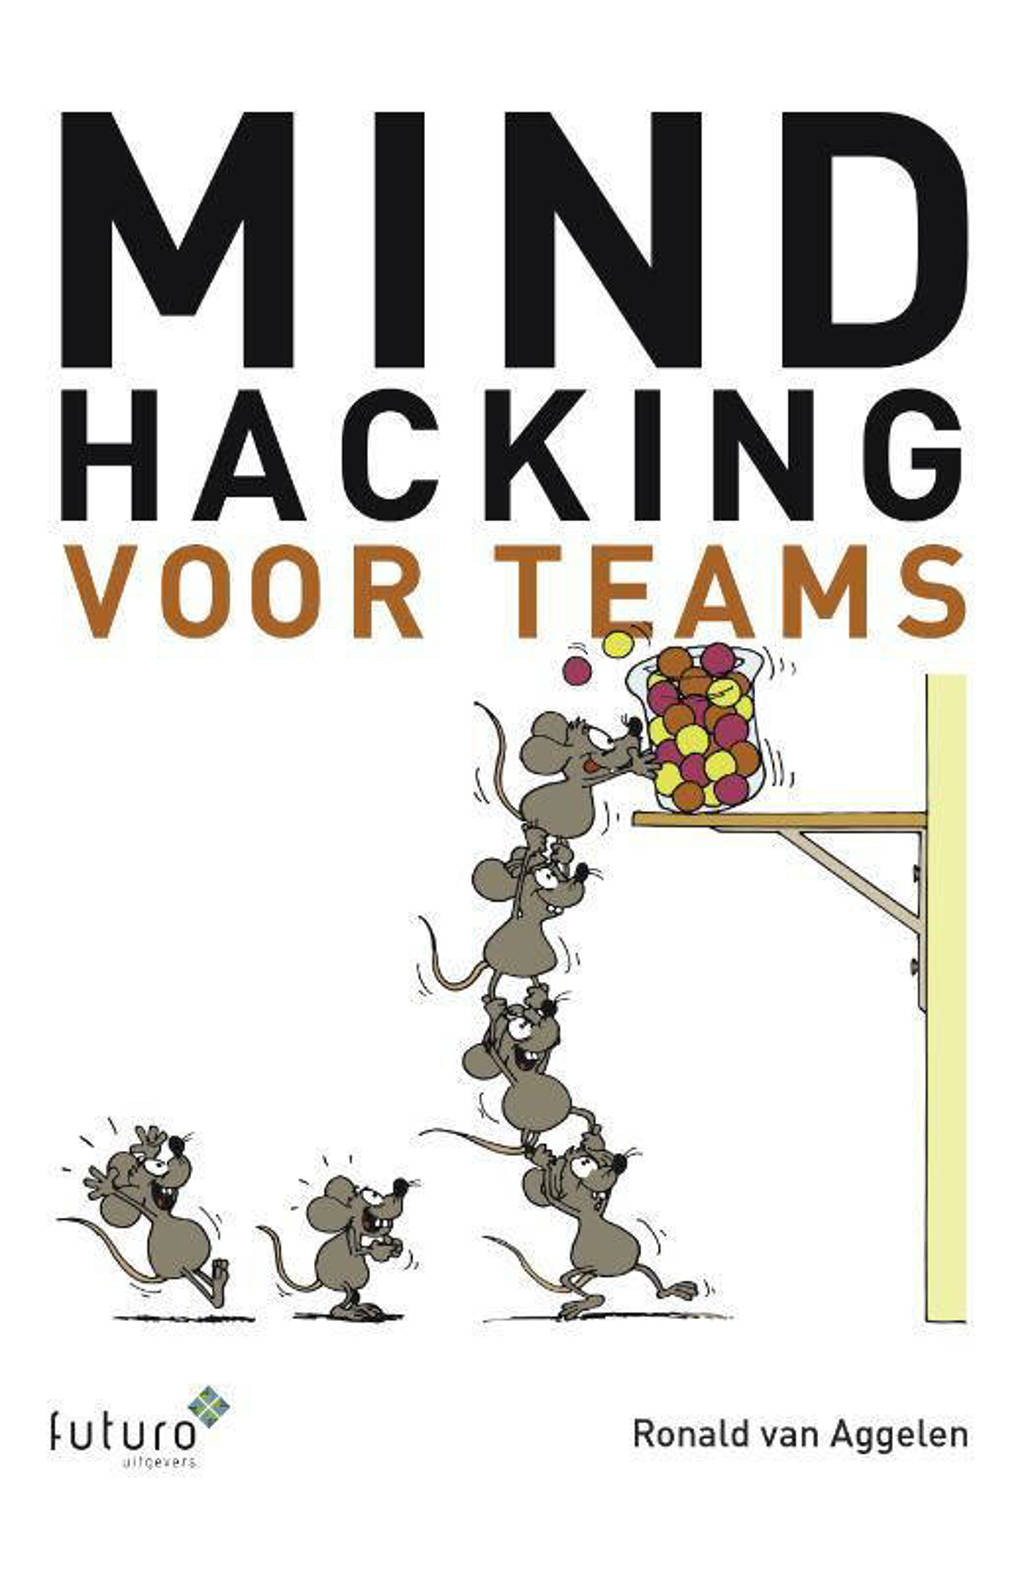 Mindhacking voor teams - Ronald van Aggelen